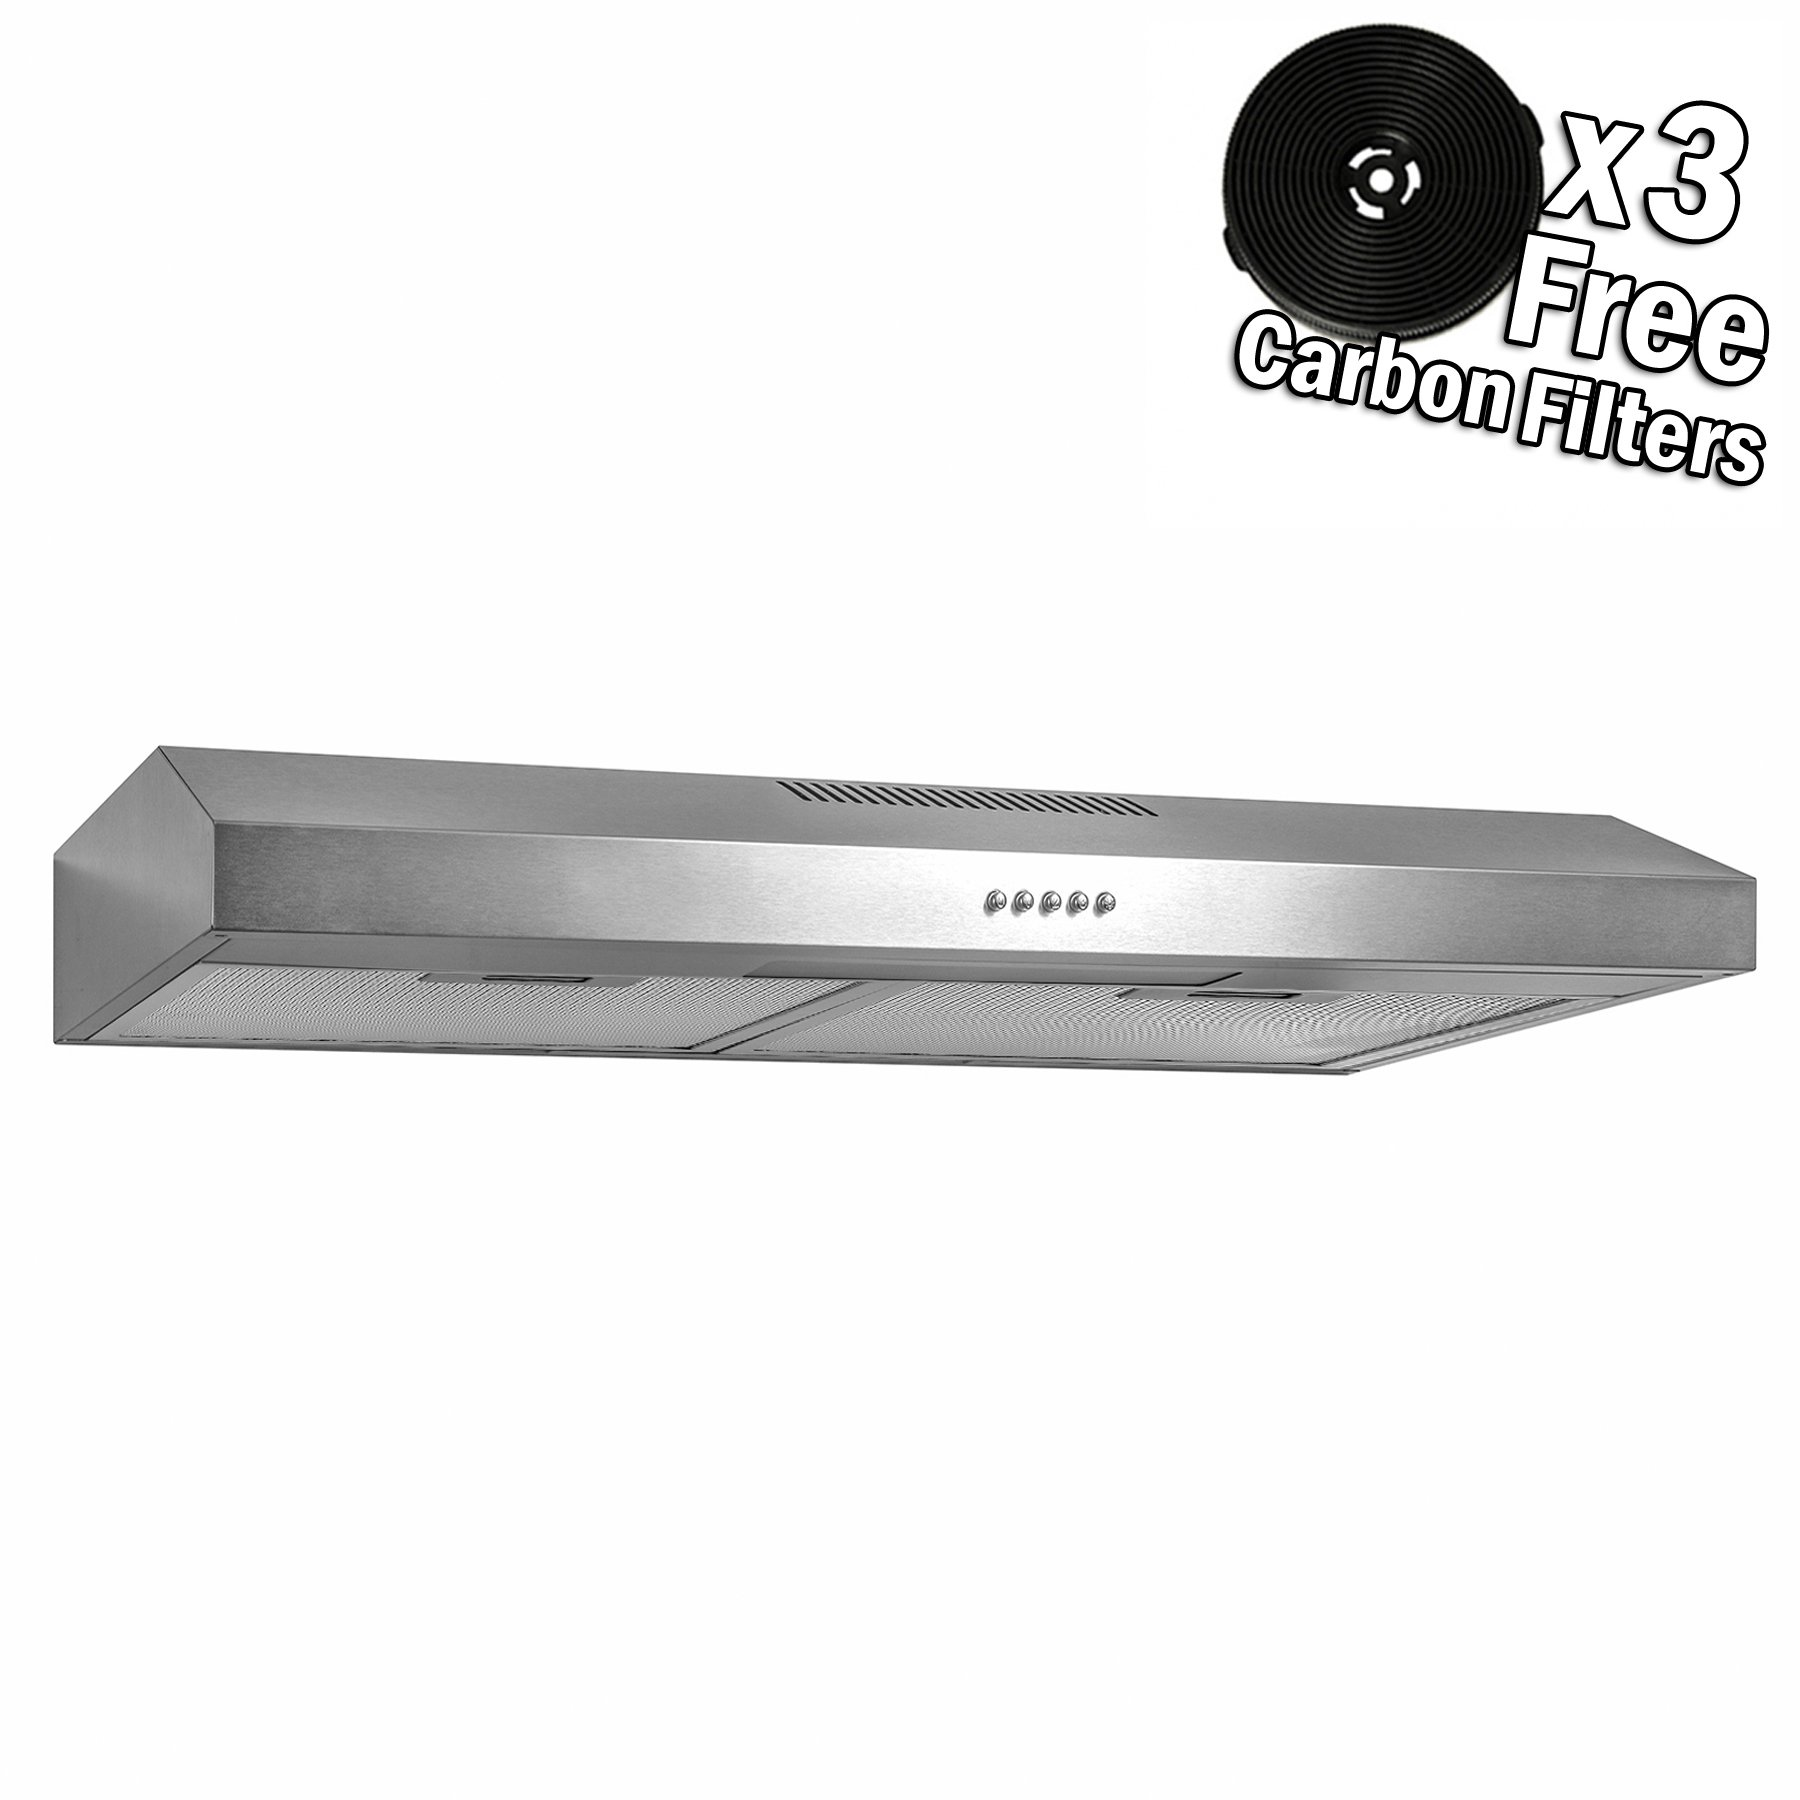 AKDY 24 in. 58 CFM Under Cabinet Convertible Range Hood with Light and Carbon Filters (Stainless Steel) by AKDY